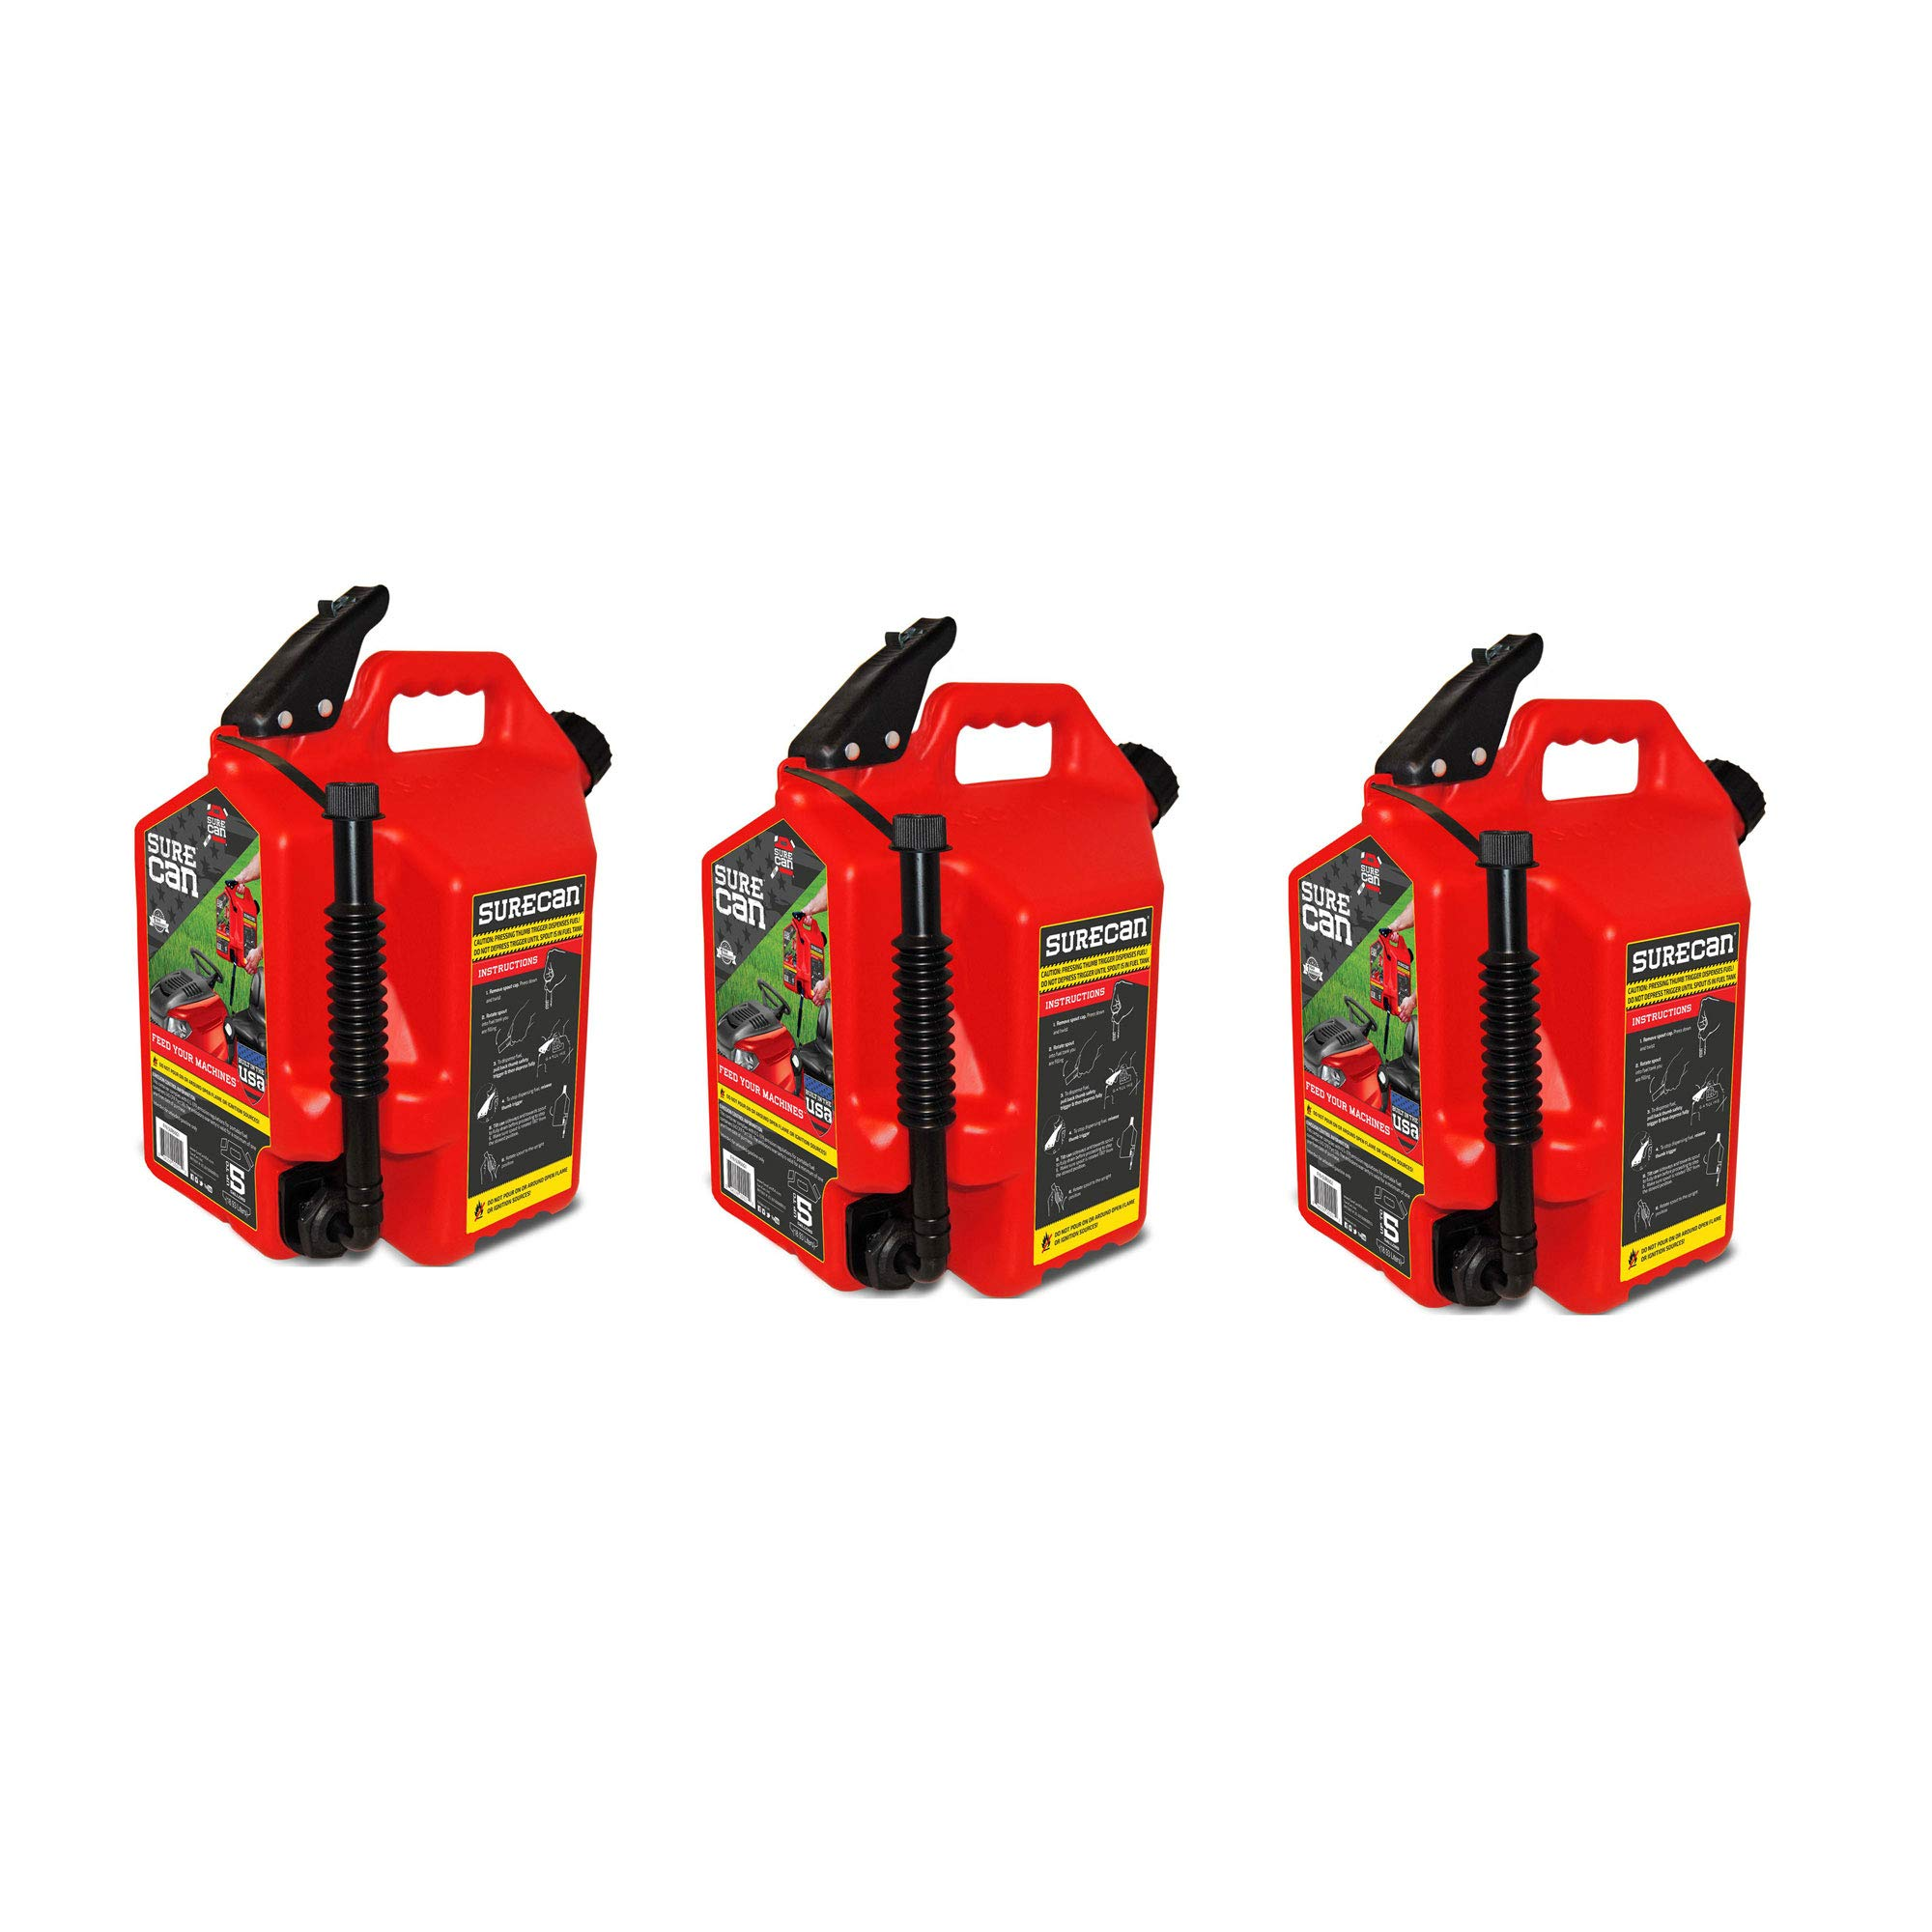 Surecan Self Venting Easy Pour Nozzle 5 Gallon Flow Control Gas Container, Red (3 Pack)